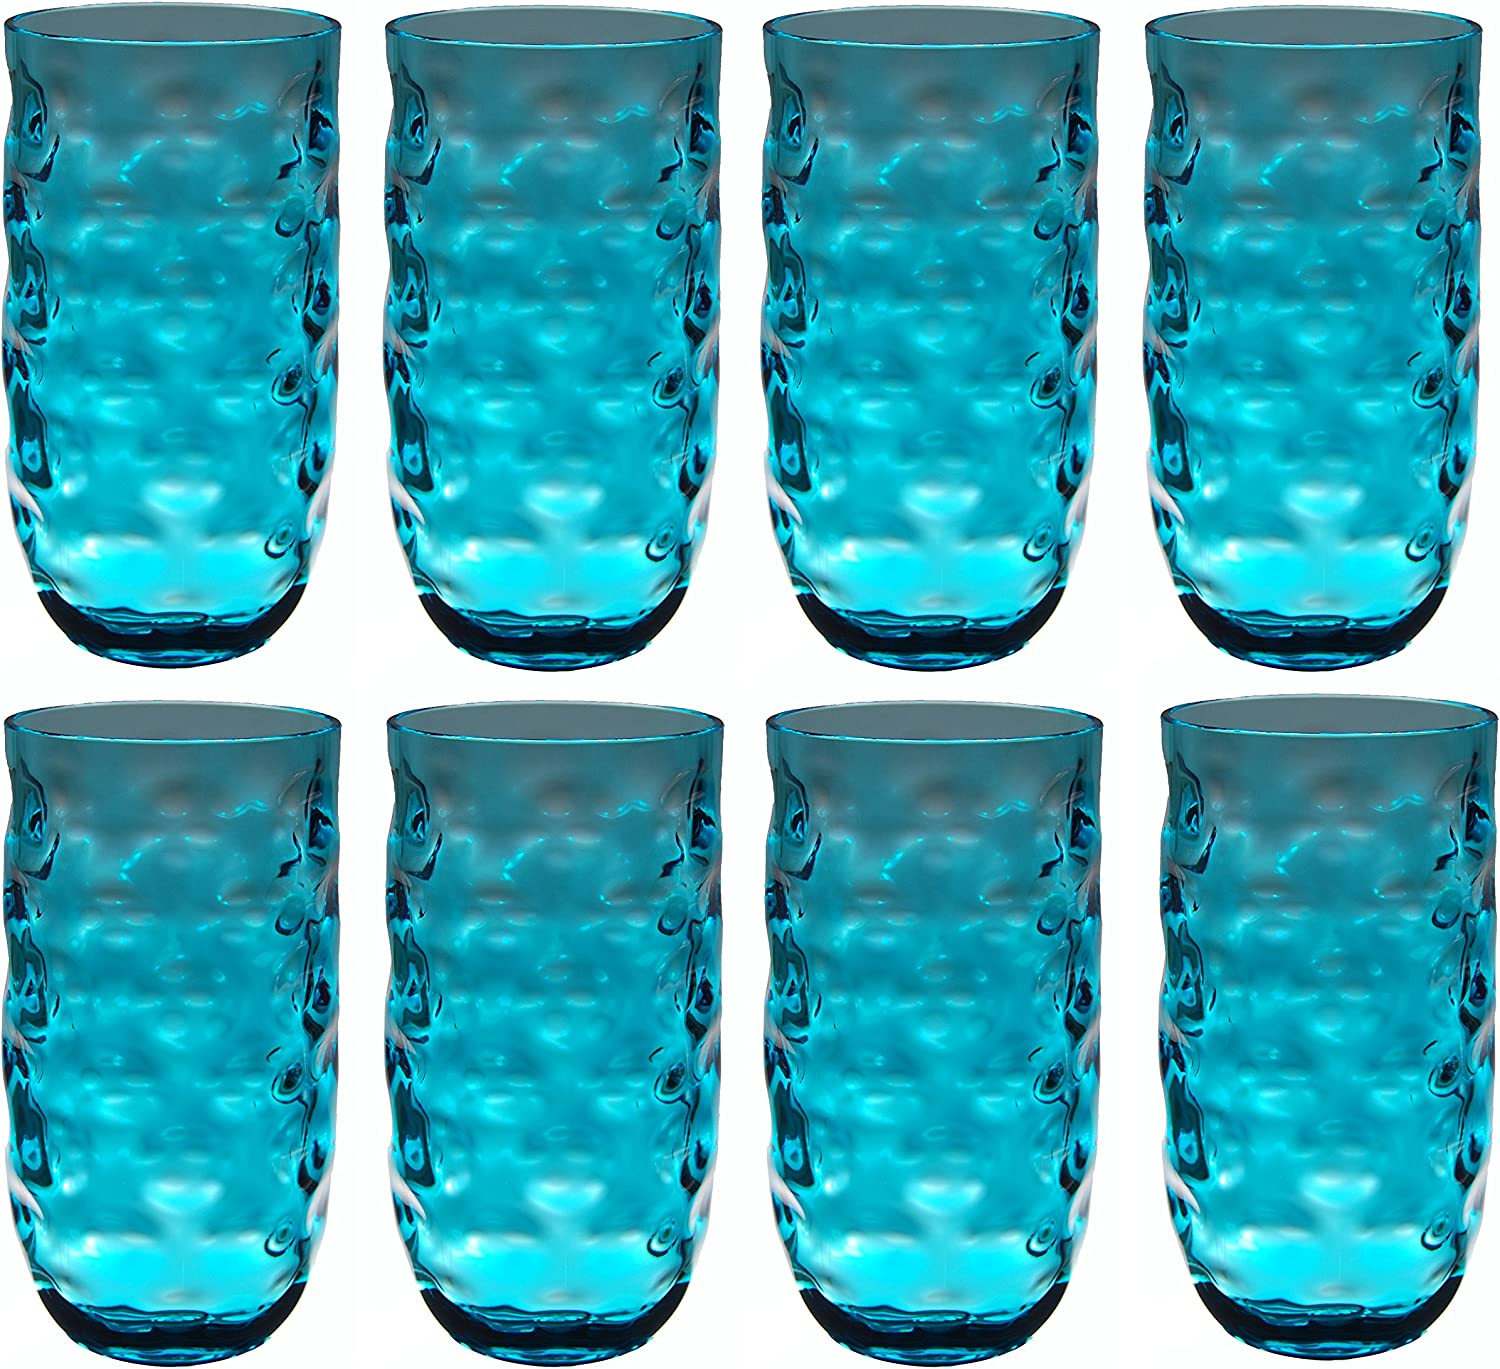 QG Clear Colorful Acrylic Plastic 22 oz. Water Cup Drinking Glass Tumbler Set of 8 Blue